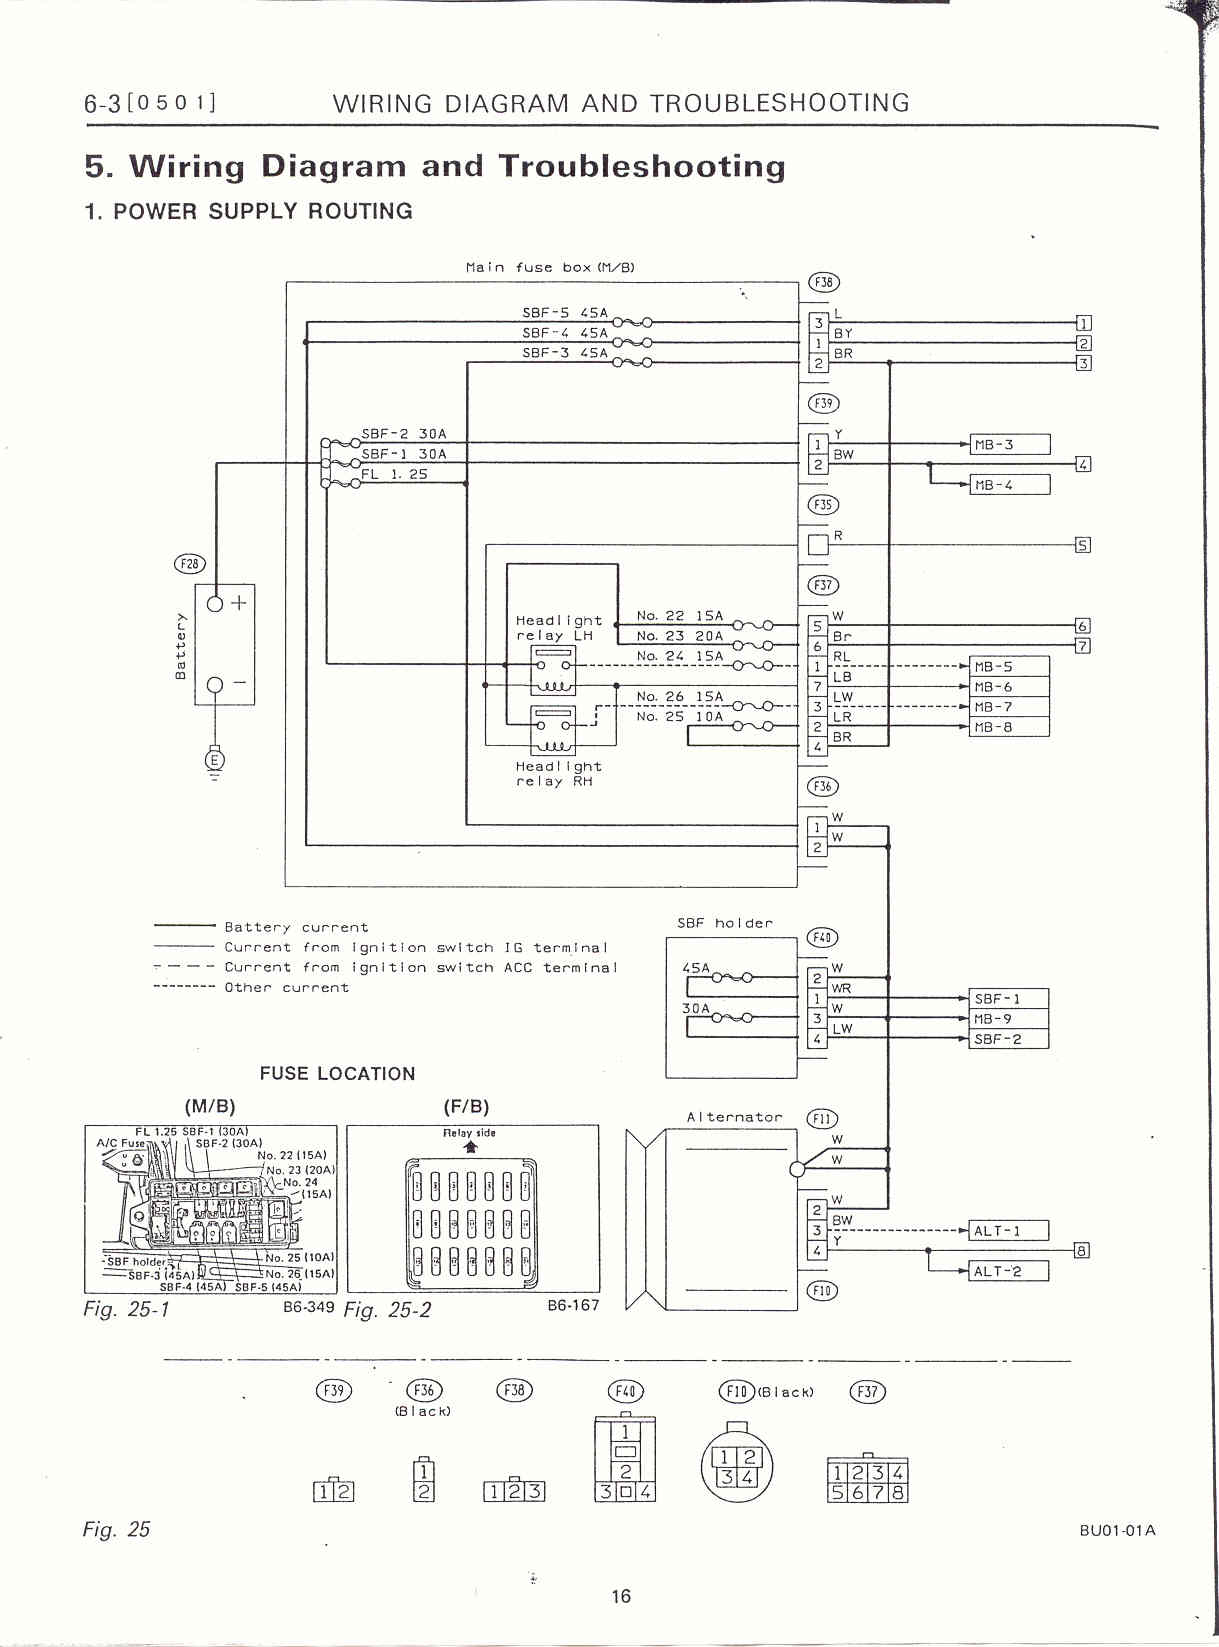 2013 Subaru Wrx Interior Wiring Diagrams Loyale Stereo Diagram Free 1991 Fuse Box Chrysler Grand Voyager 2003 Outback Wiringdiagram